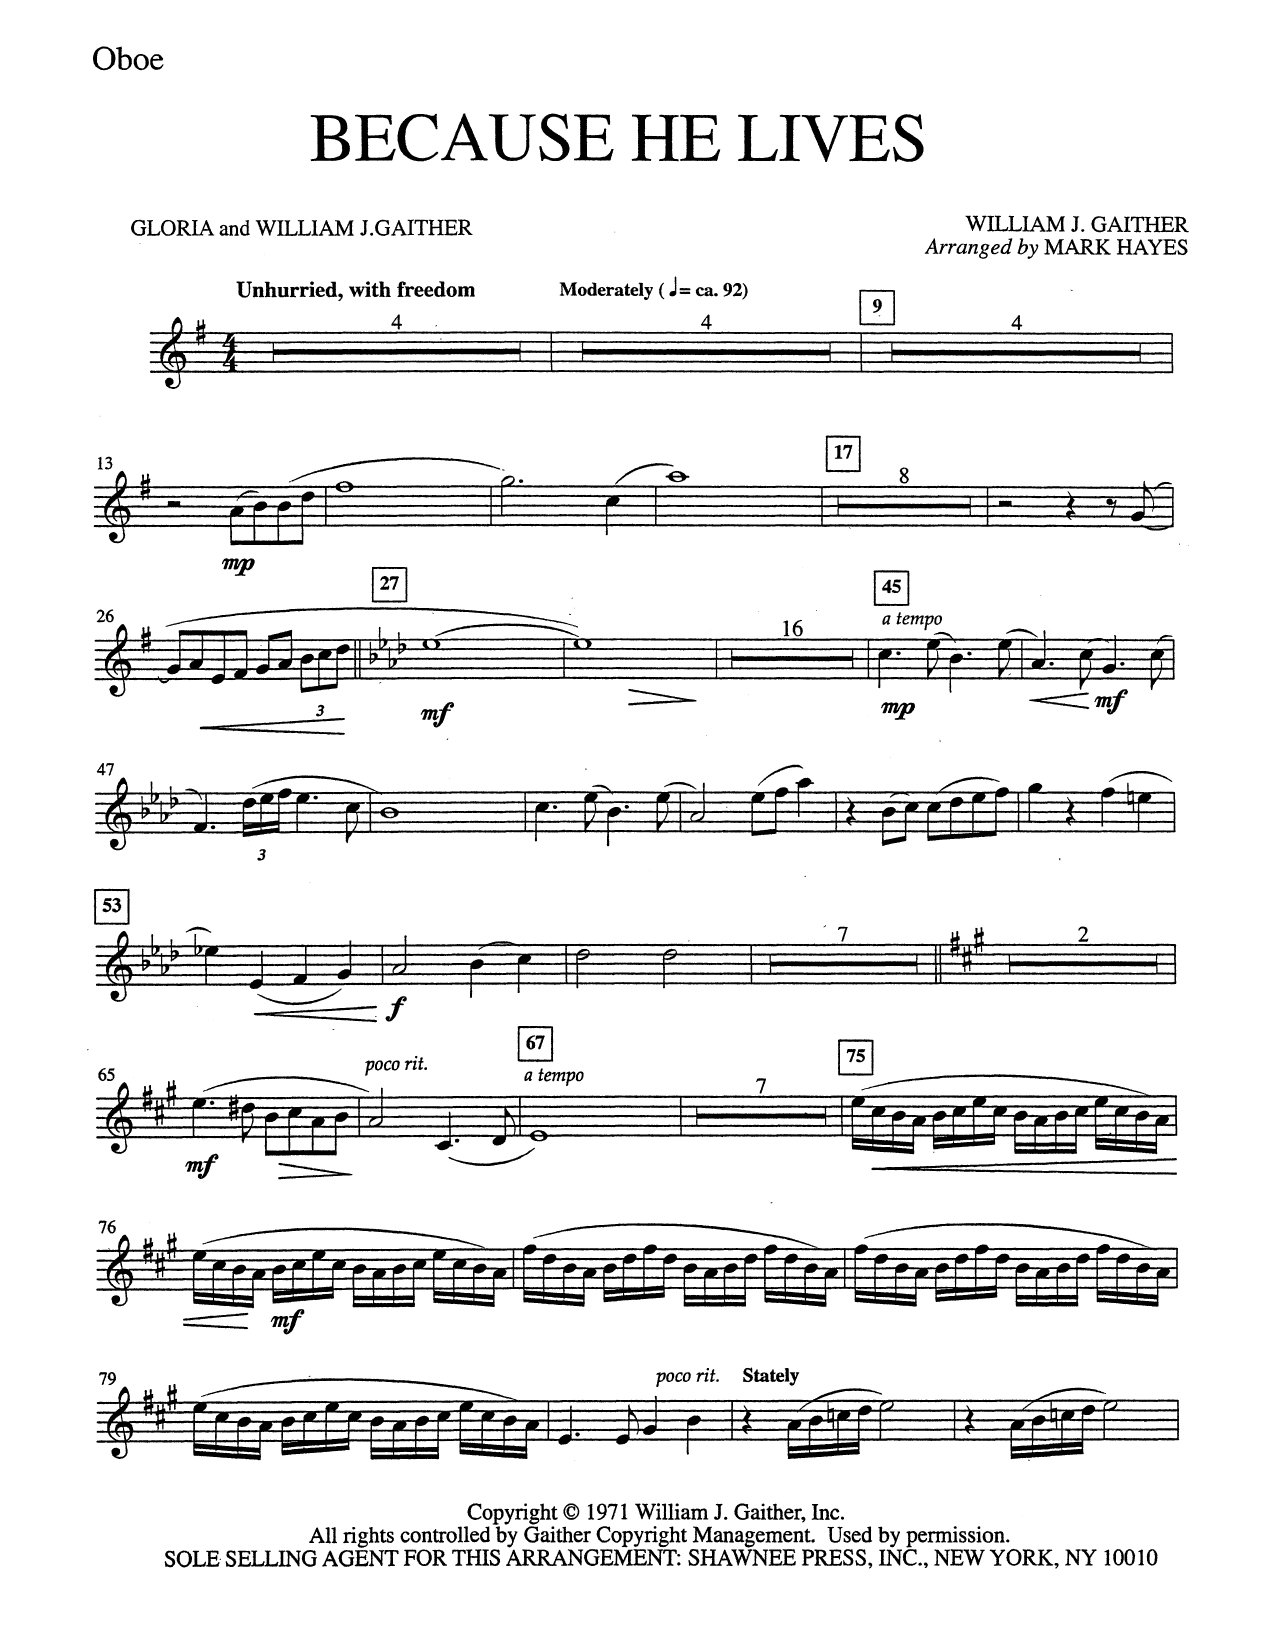 Mark Hayes Because He Lives - Oboe sheet music notes and chords. Download Printable PDF.